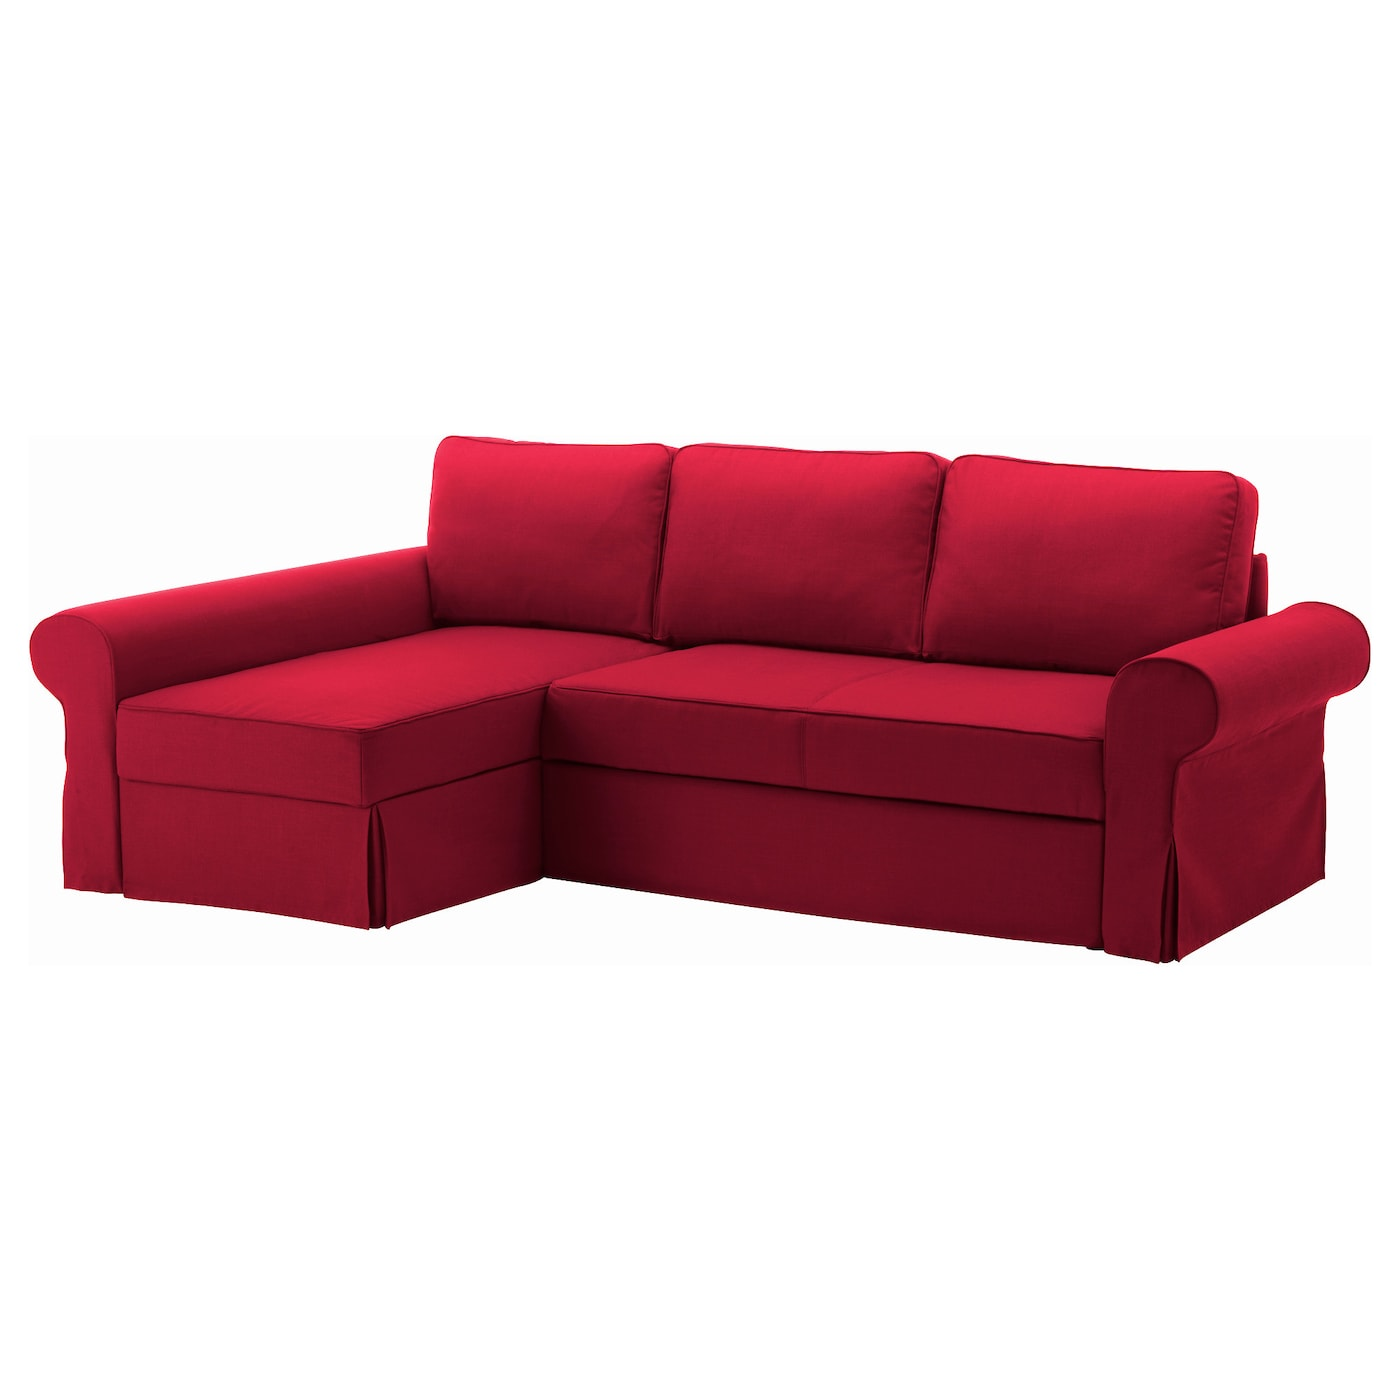 Backabro sofa bed with chaise longue nordvalla red ikea for Chaise longue beds